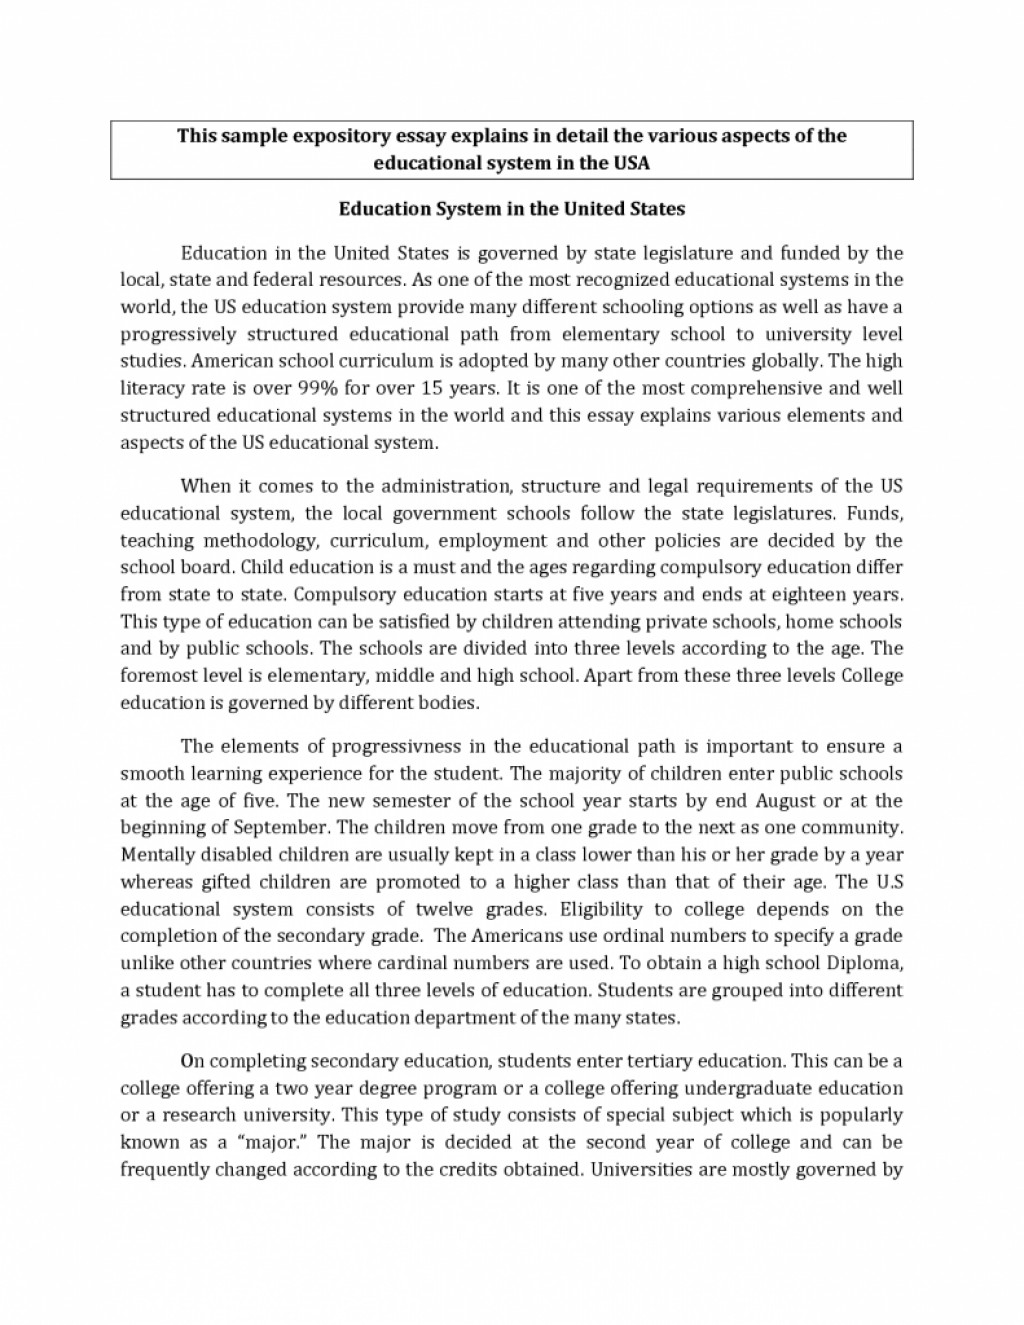 014 Informative Research Paper Topics For High School Students Essay Examples Of Essays Samples Expository Middle Pdf Excellent Ideas Large